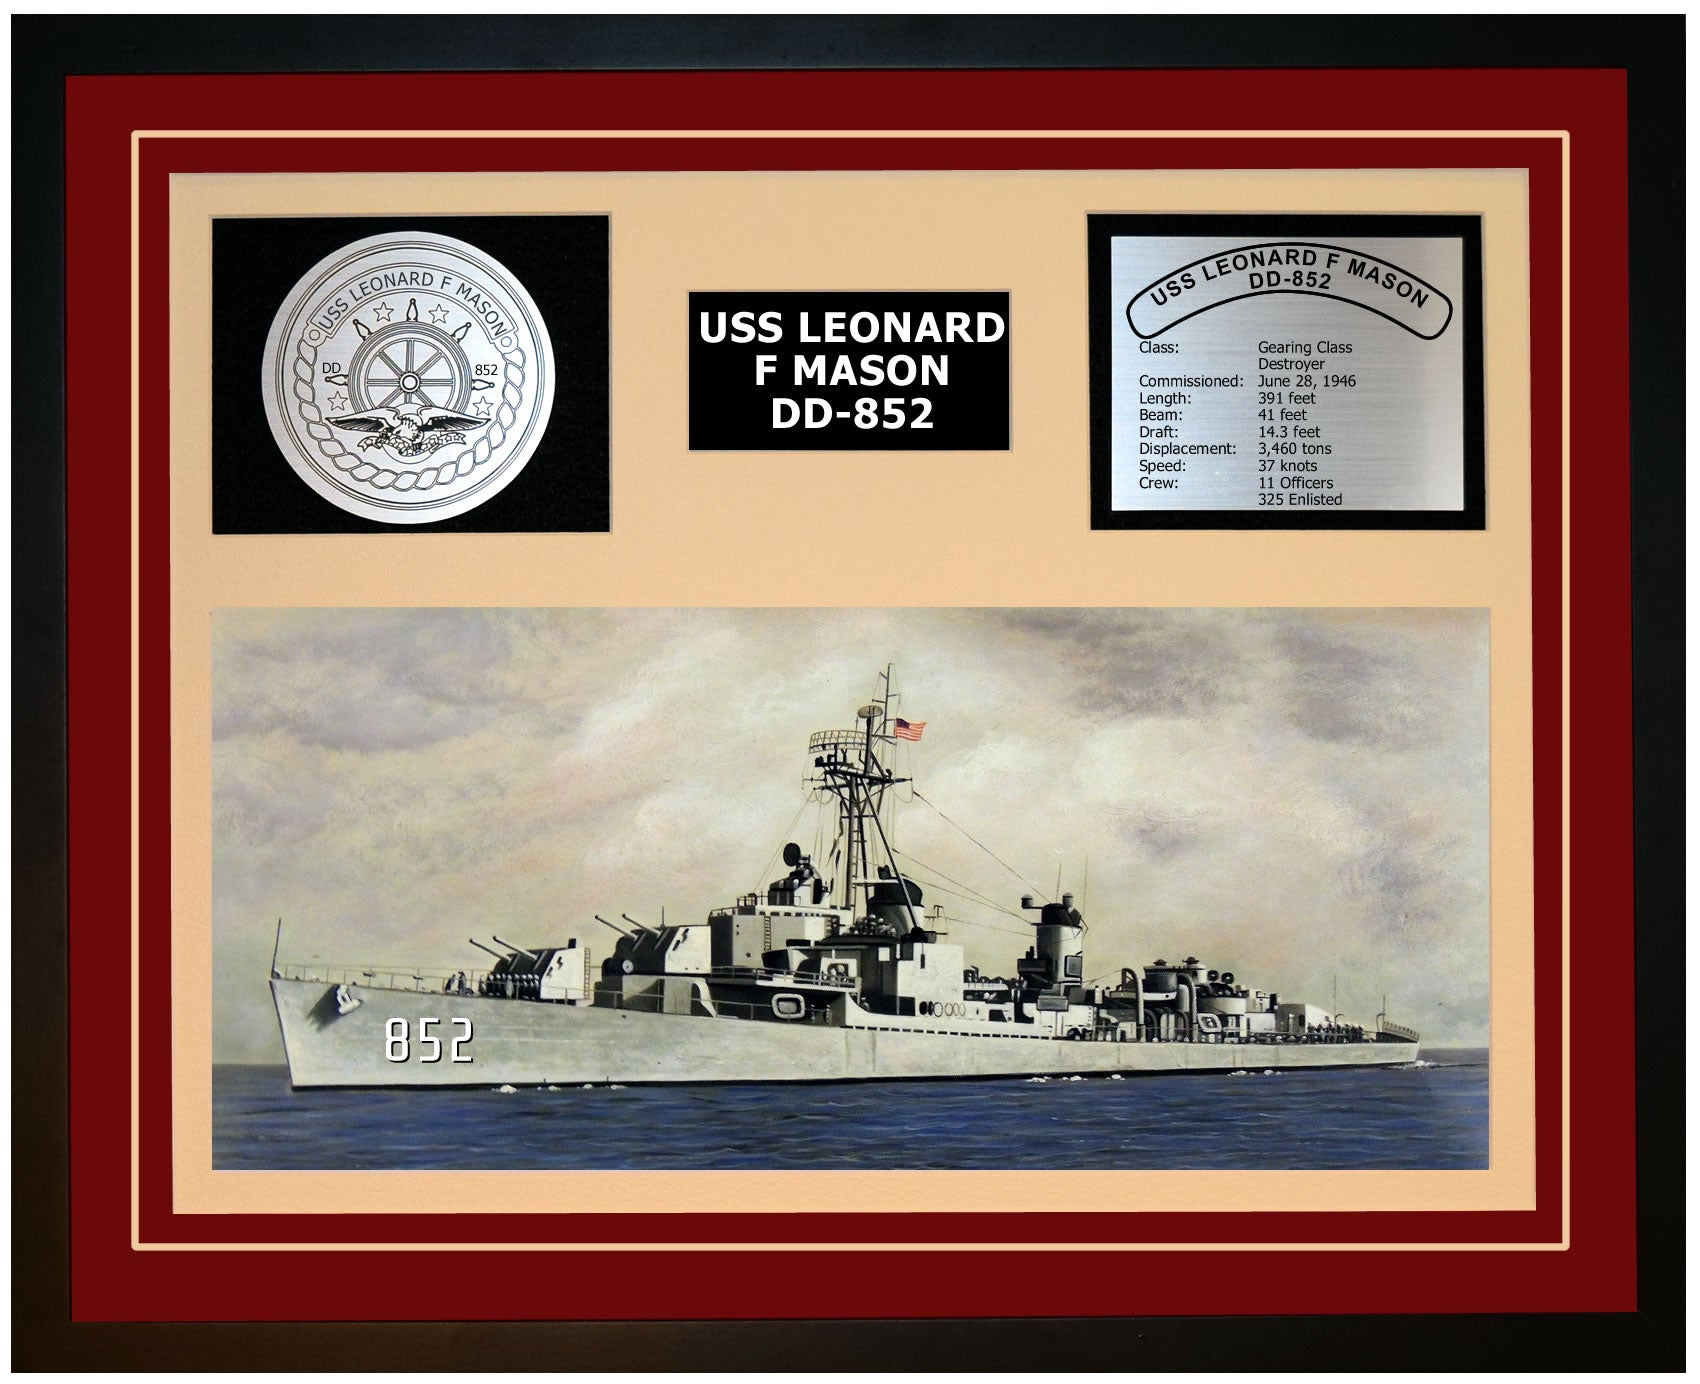 USS LEONARD F MASON DD-852 Framed Navy Ship Display Burgundy